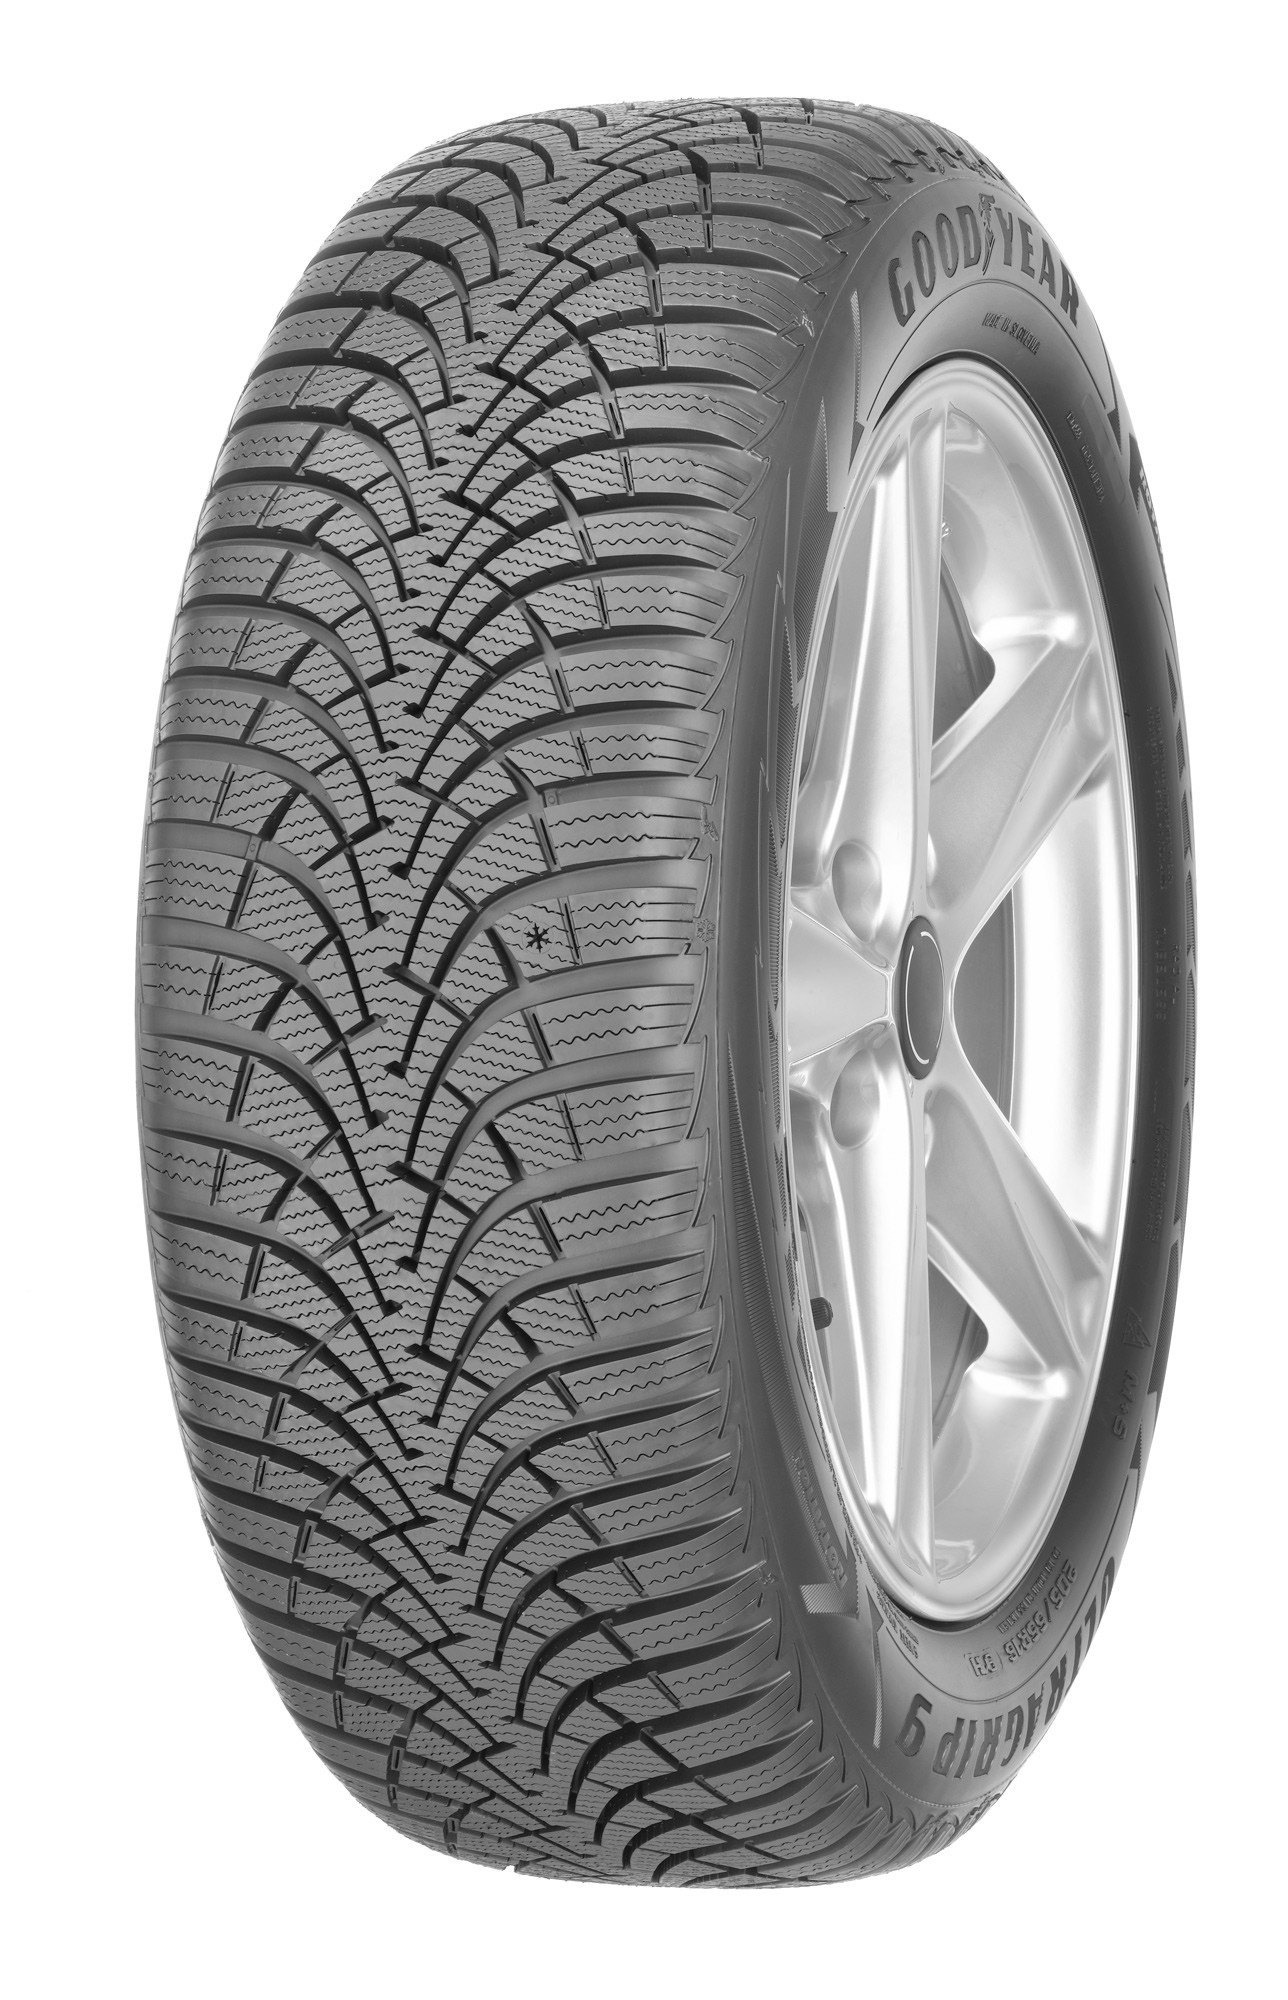 Anvelopa Iarna 205/60R15 91T Goodyear Ultra Grip 9 Ms